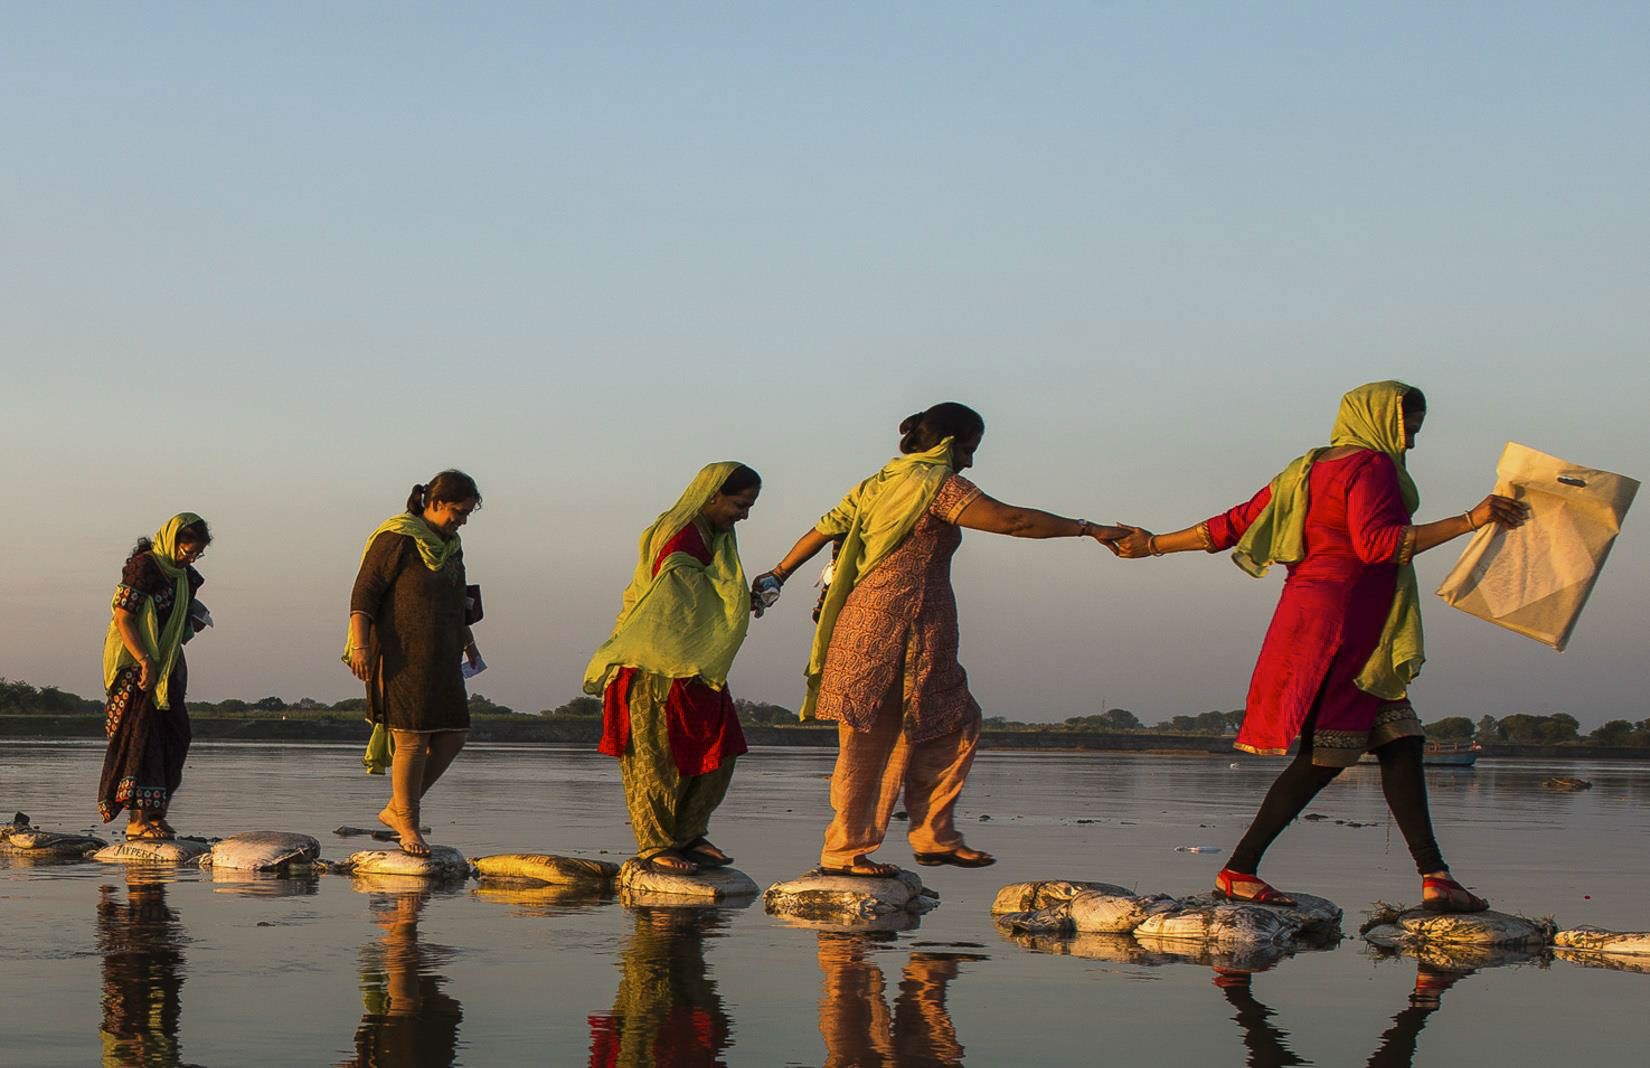 Women cross a wet swath of land by stepping on sand bags